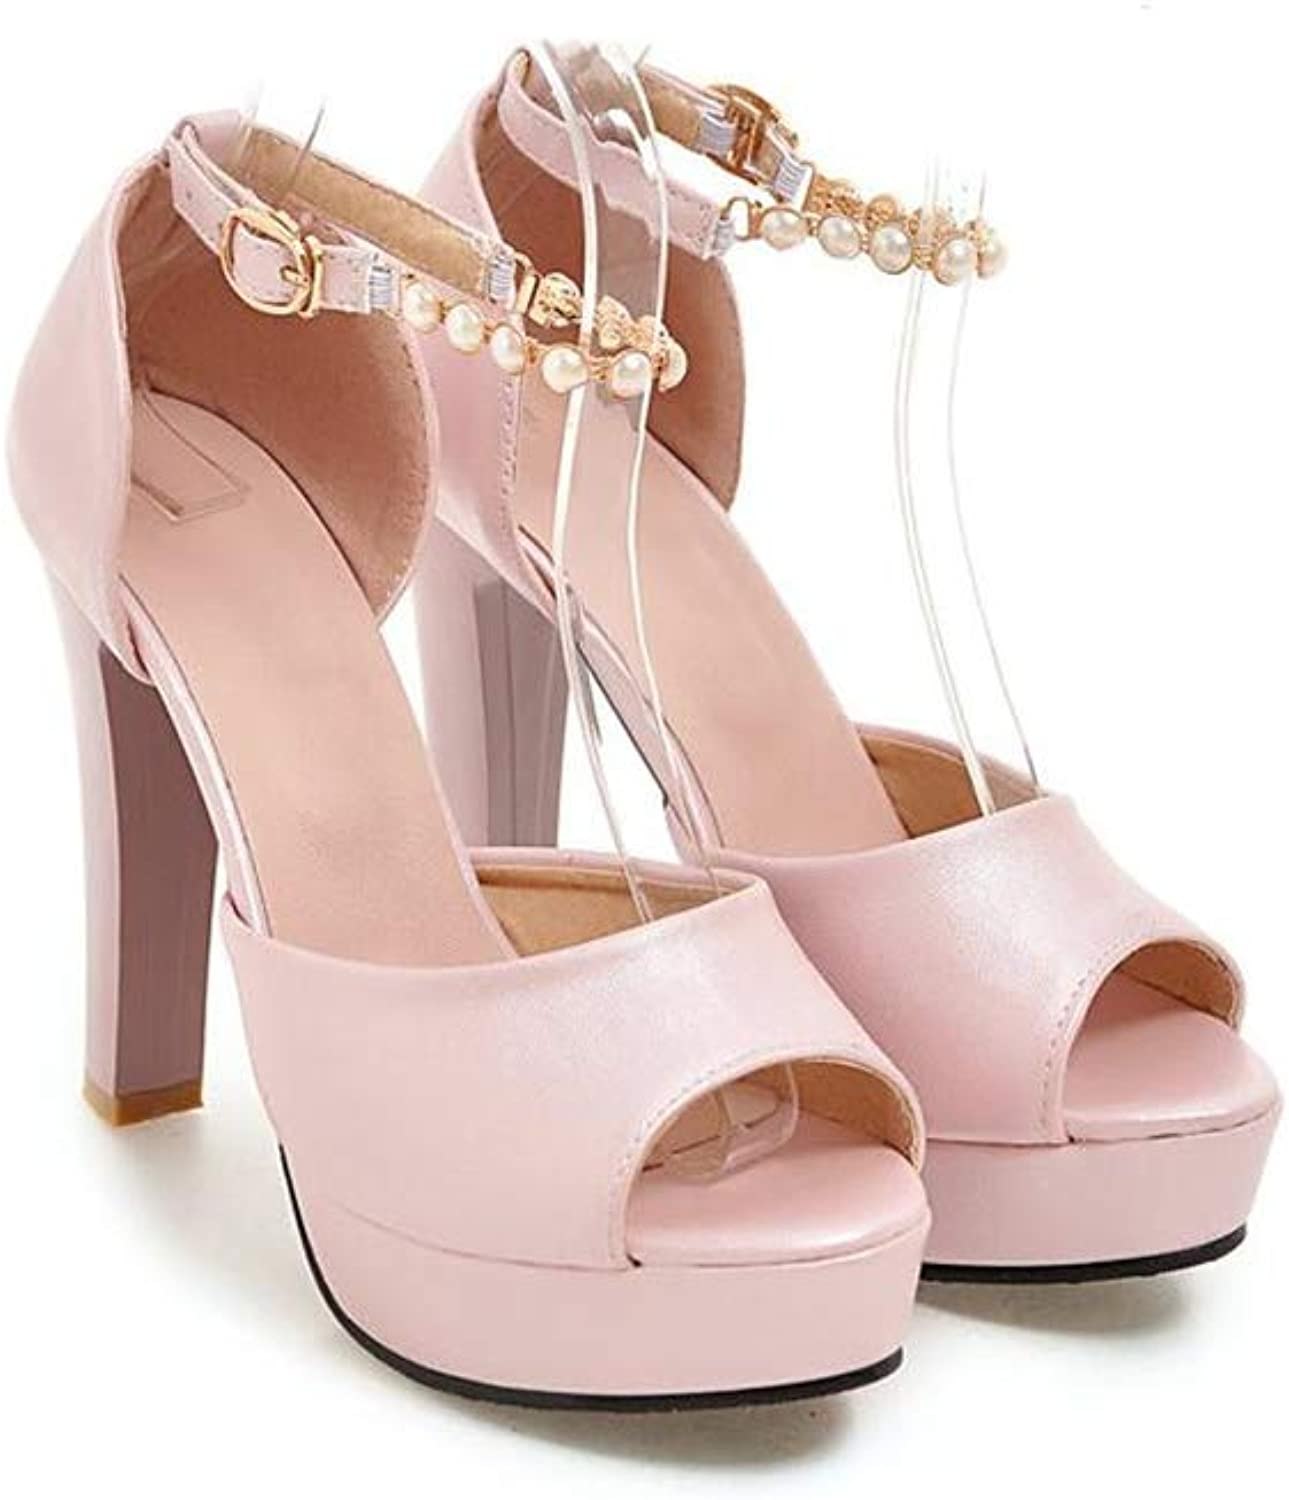 Super explosion Women's shoes Simple Platform Ankle Strap Chunky High Heeled Sandals